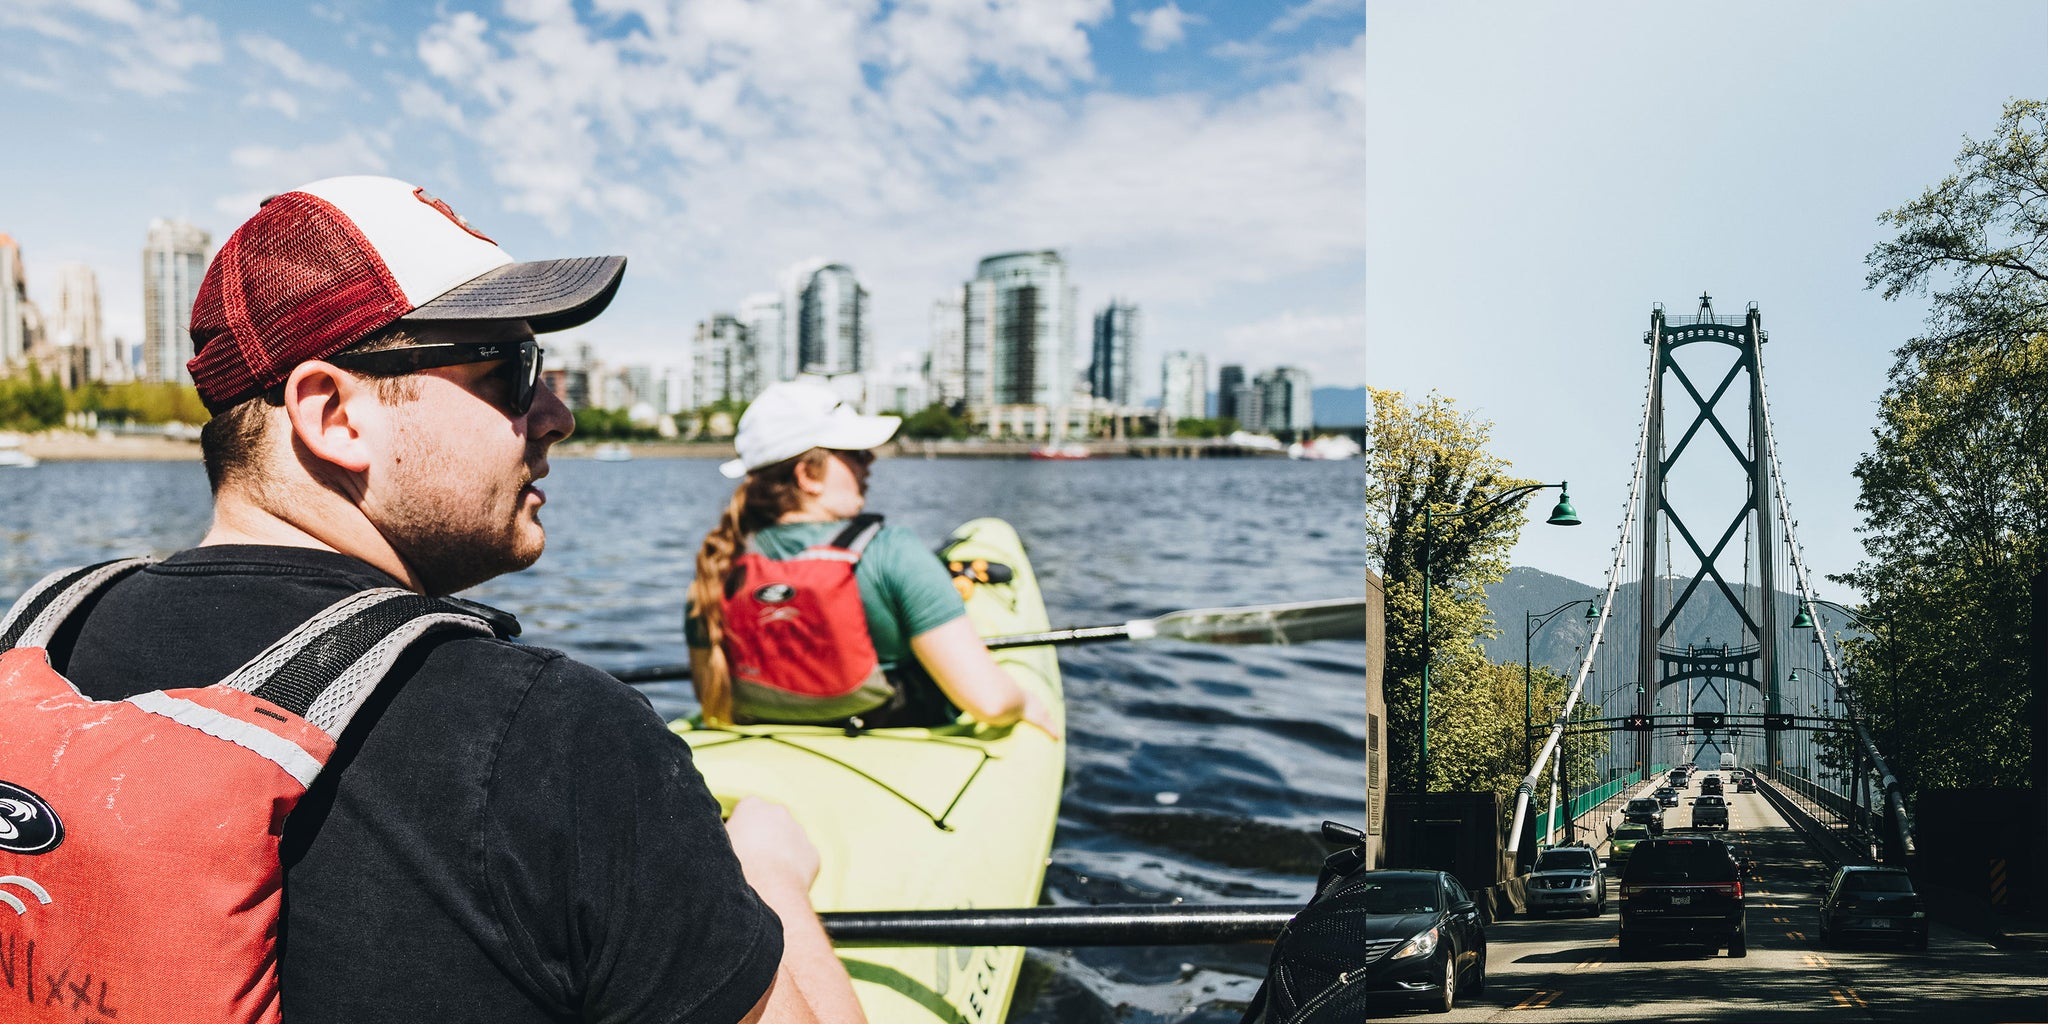 Brandon Lind's Excellent Adventure in Vancouver with Bather